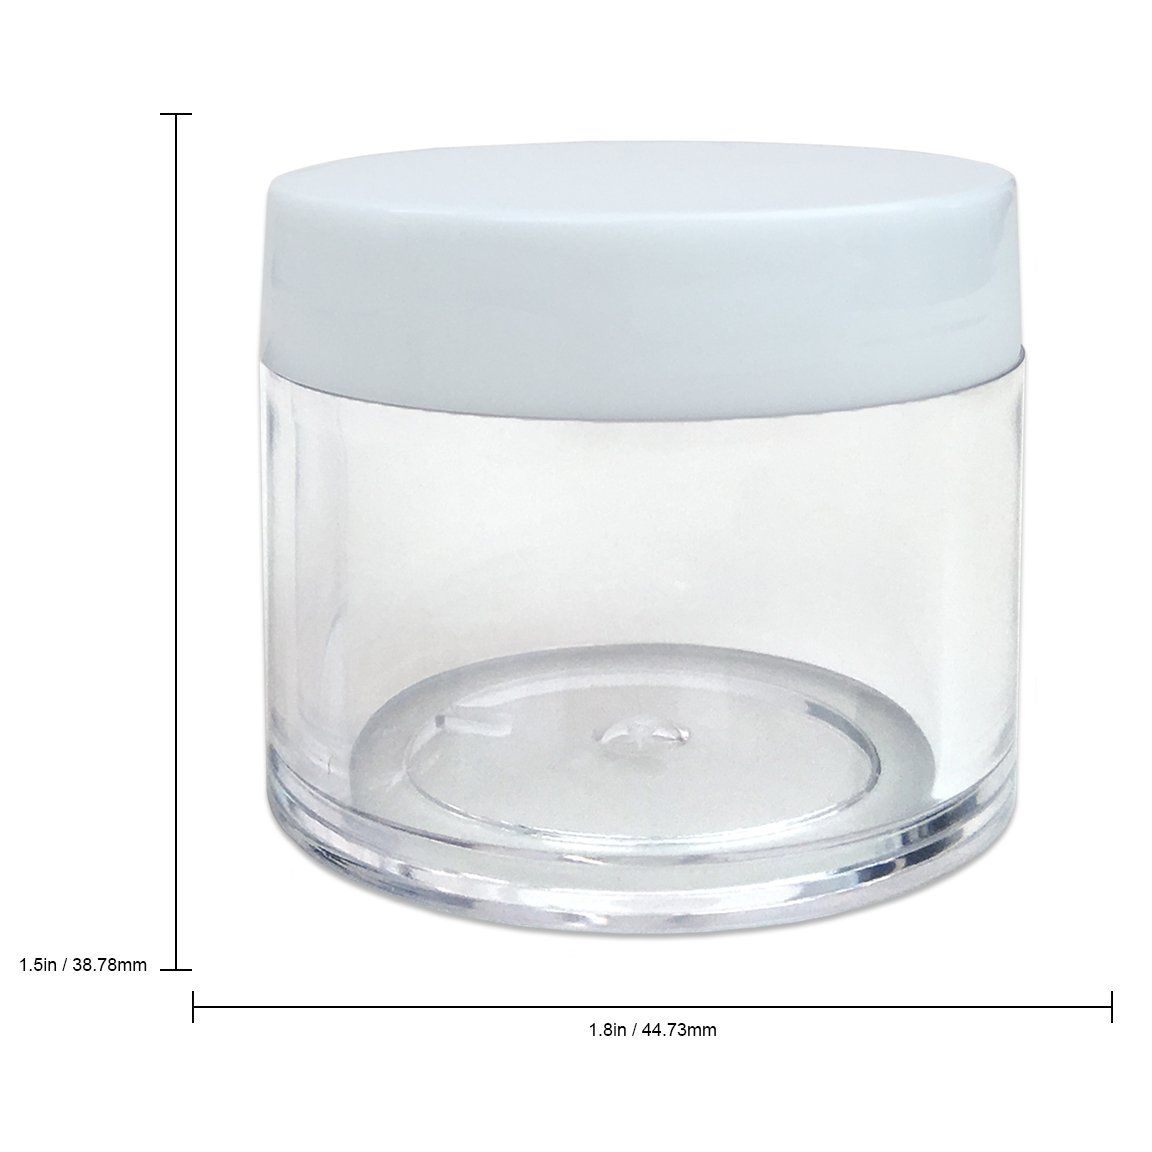 Beauticom High Quality 30g 30ml 1 Oz Round Clear Jars With White Lids For Cosmetics Medication Lab And Field Research Clear Acrylic Clear Jars Travel Container